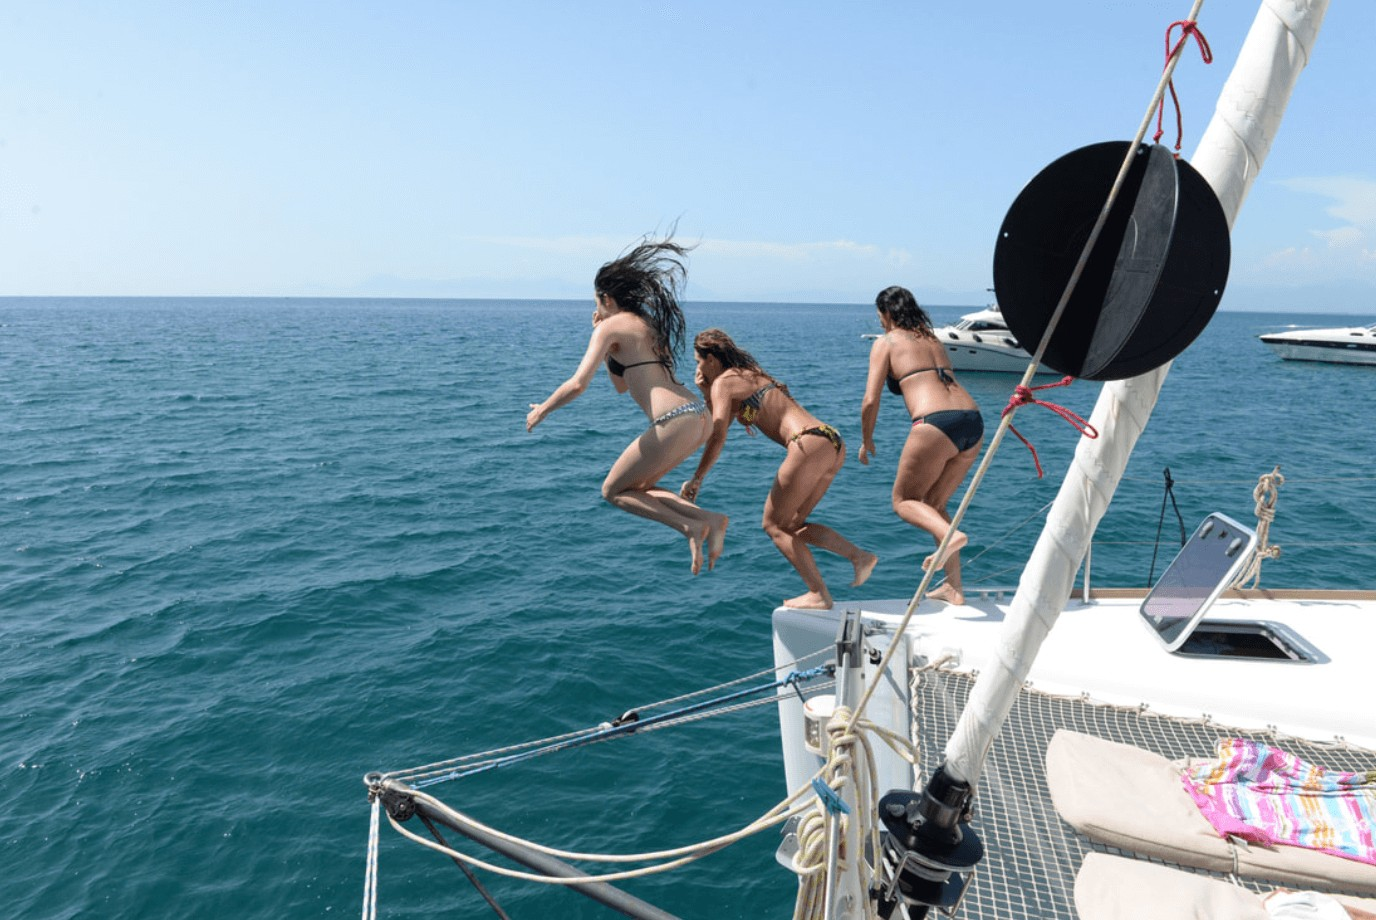 mauritius-yacht-sunseeker-63-your-boat-holiday-client-review